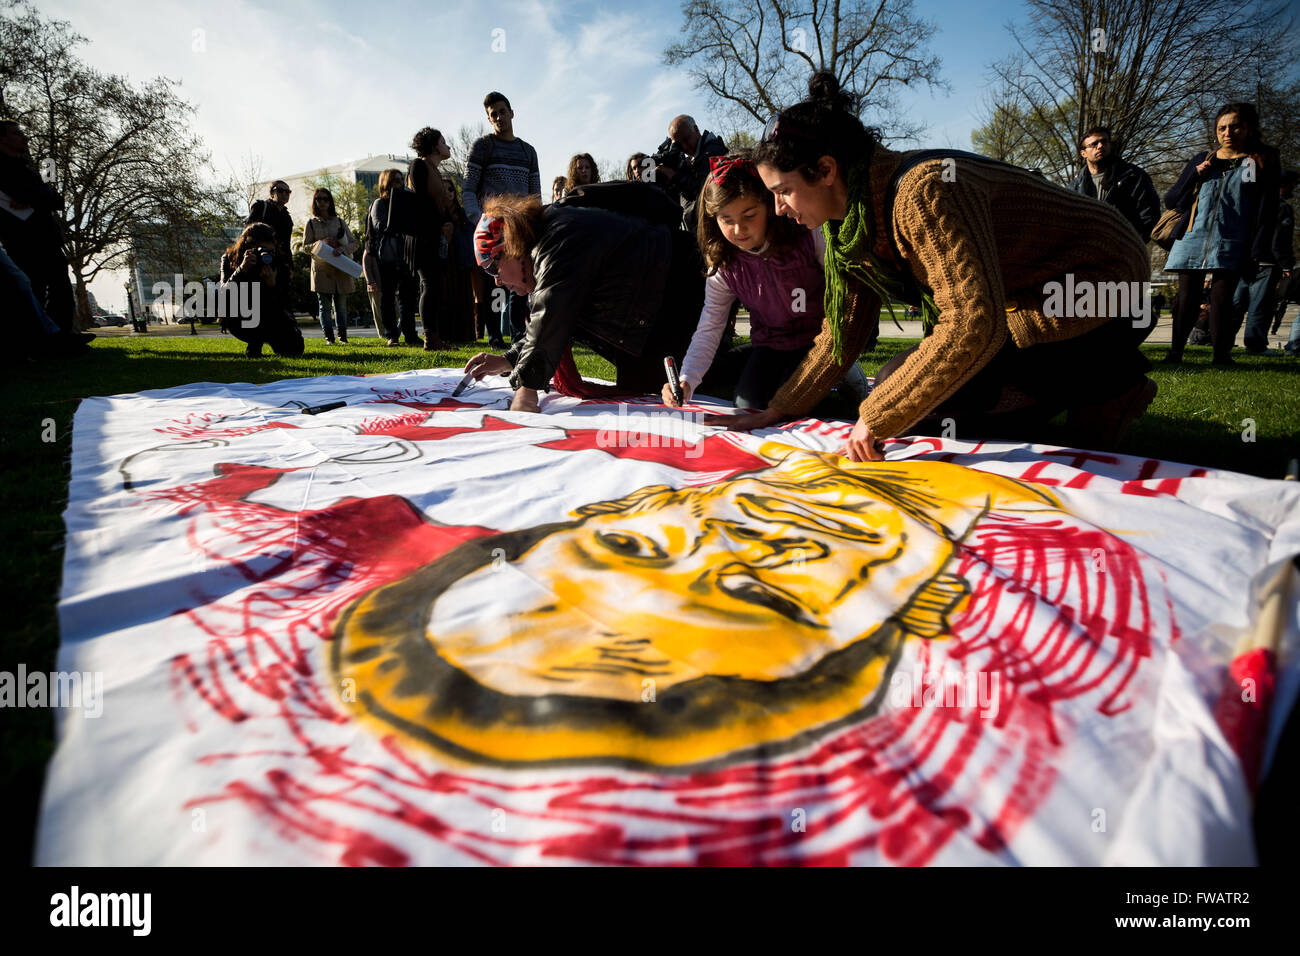 Porto, Portugal. 01st Apr, 2016. About a hundred people gathered at the Boavista roundabout to paint a track and - Stock Image